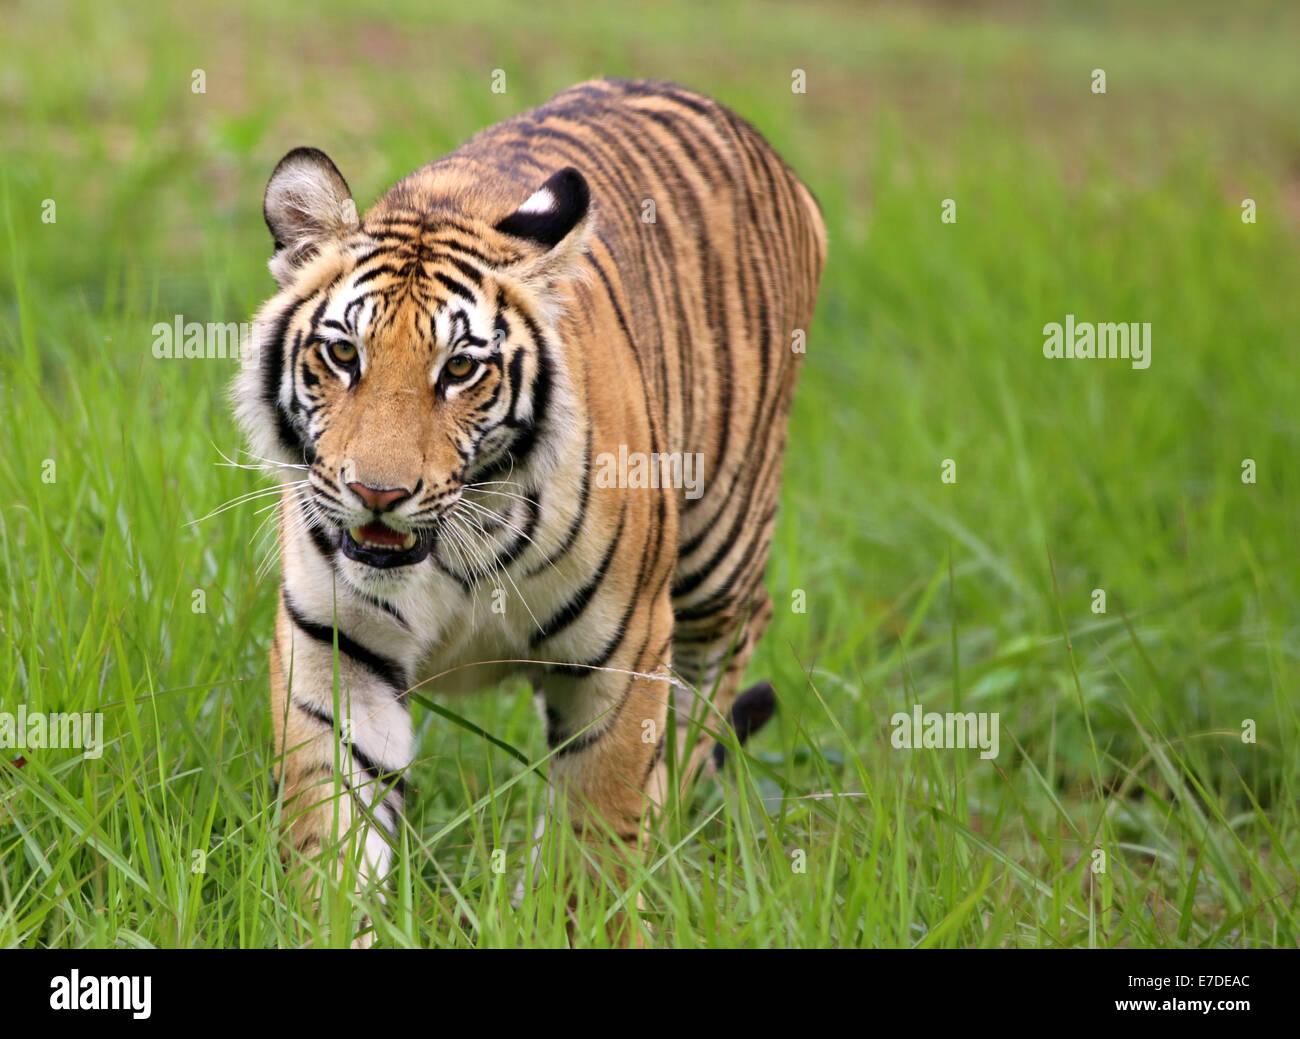 Tiger in jungle with selective focus Stock Photo